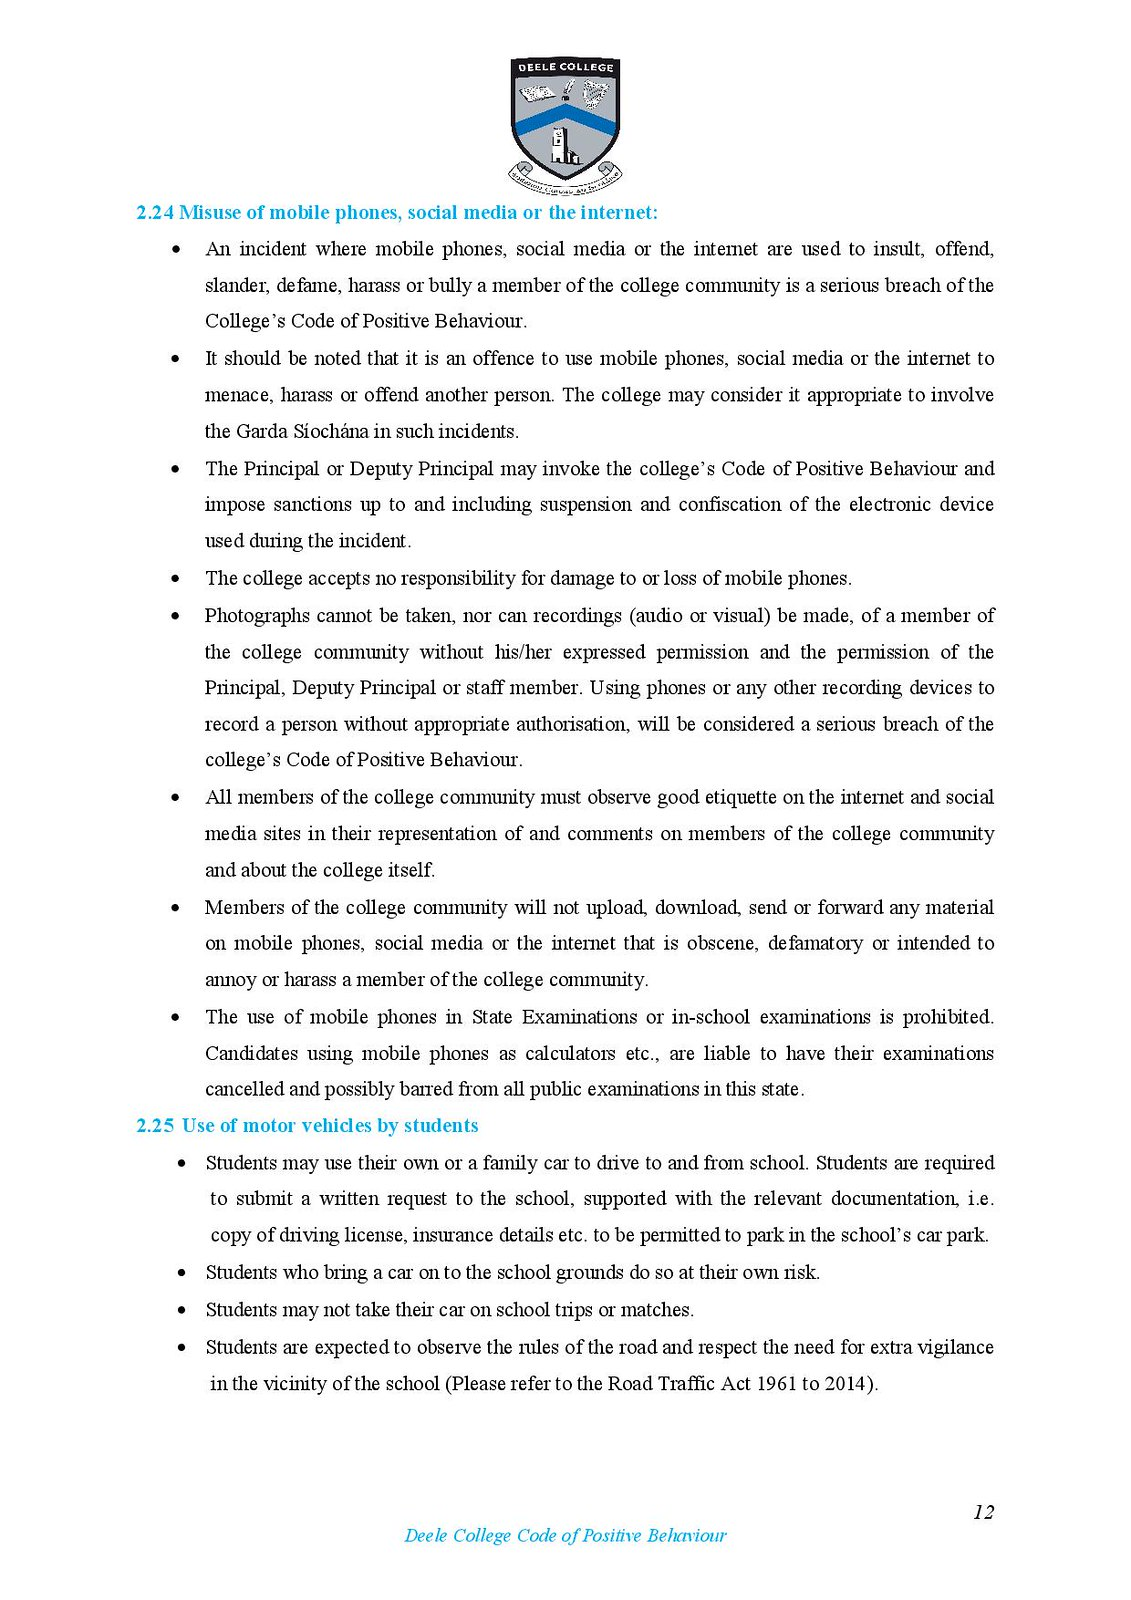 Deele College Code of Positive Behaviour Booklet 2016-page-012